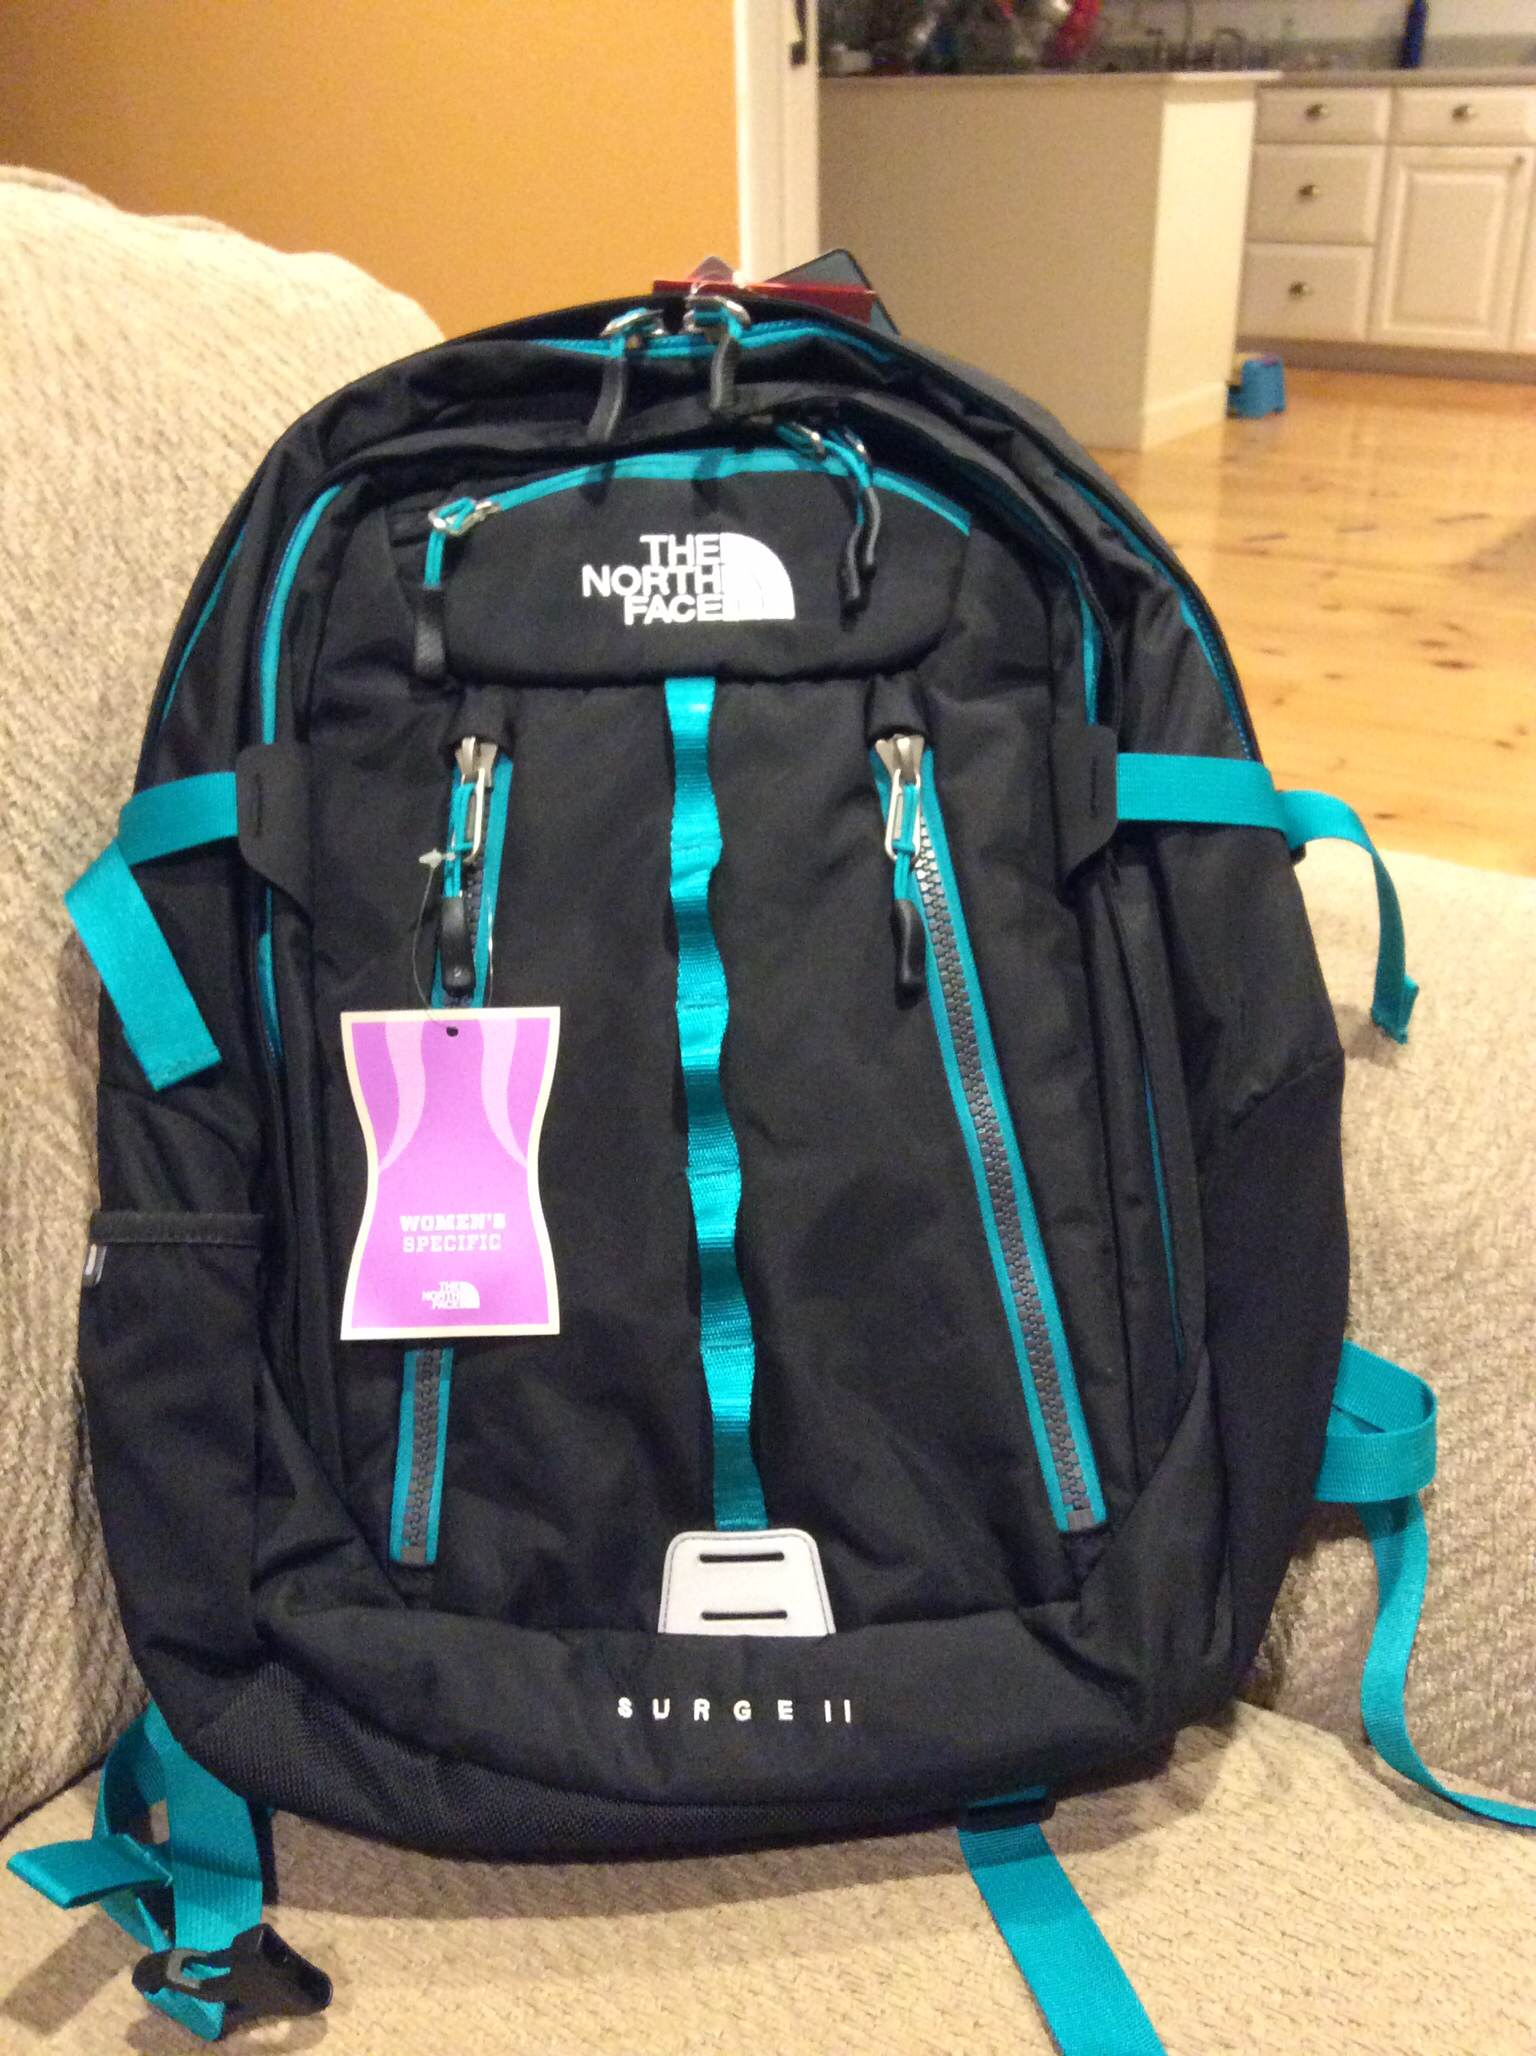 The North Face Surge II Review: the Backpack I Wish I Always Had